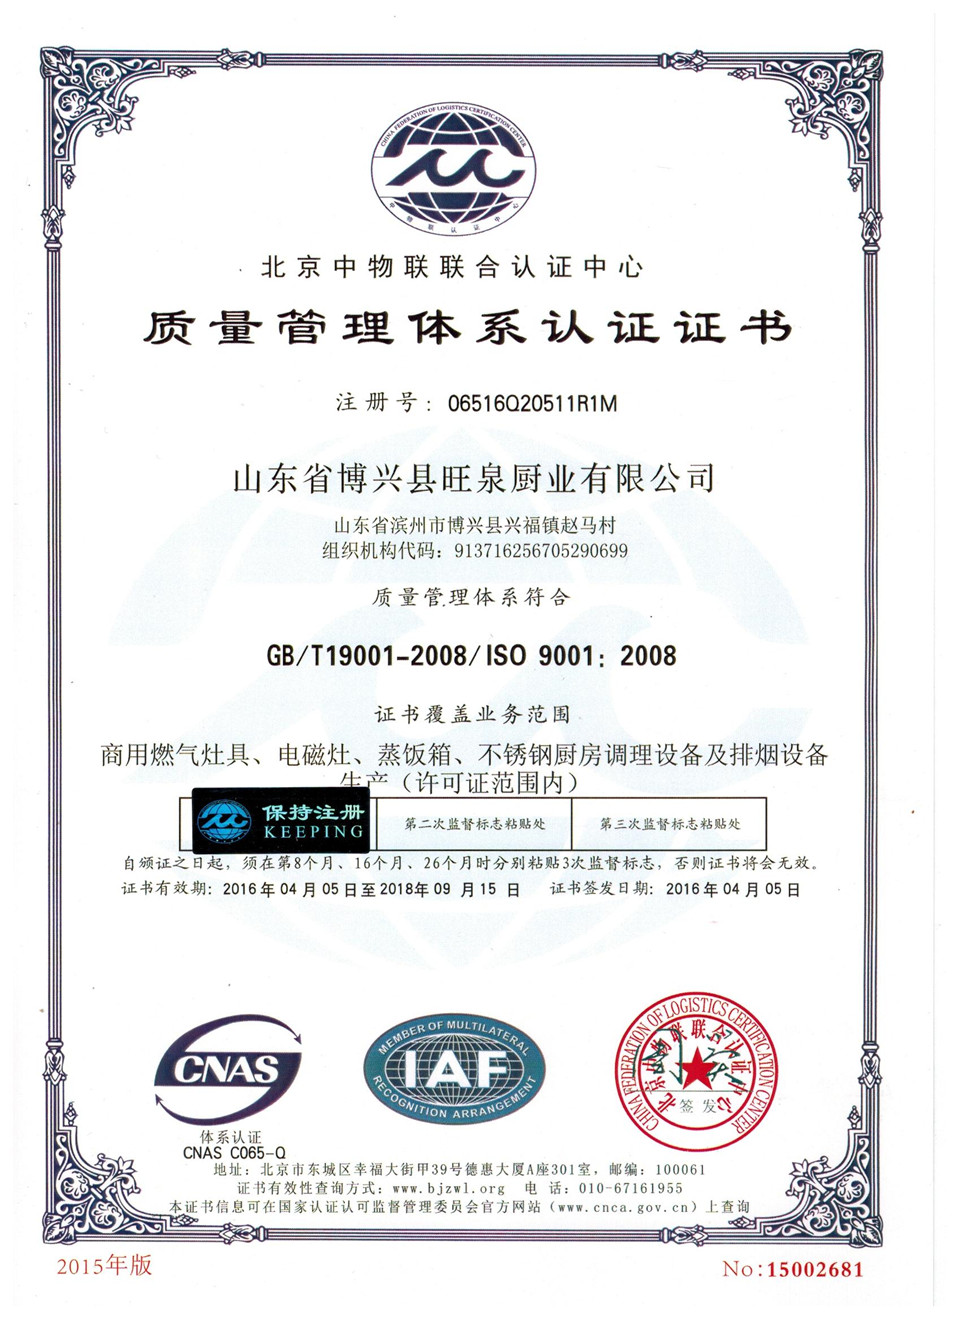 ISO9001:2008 Quality Management System Certification